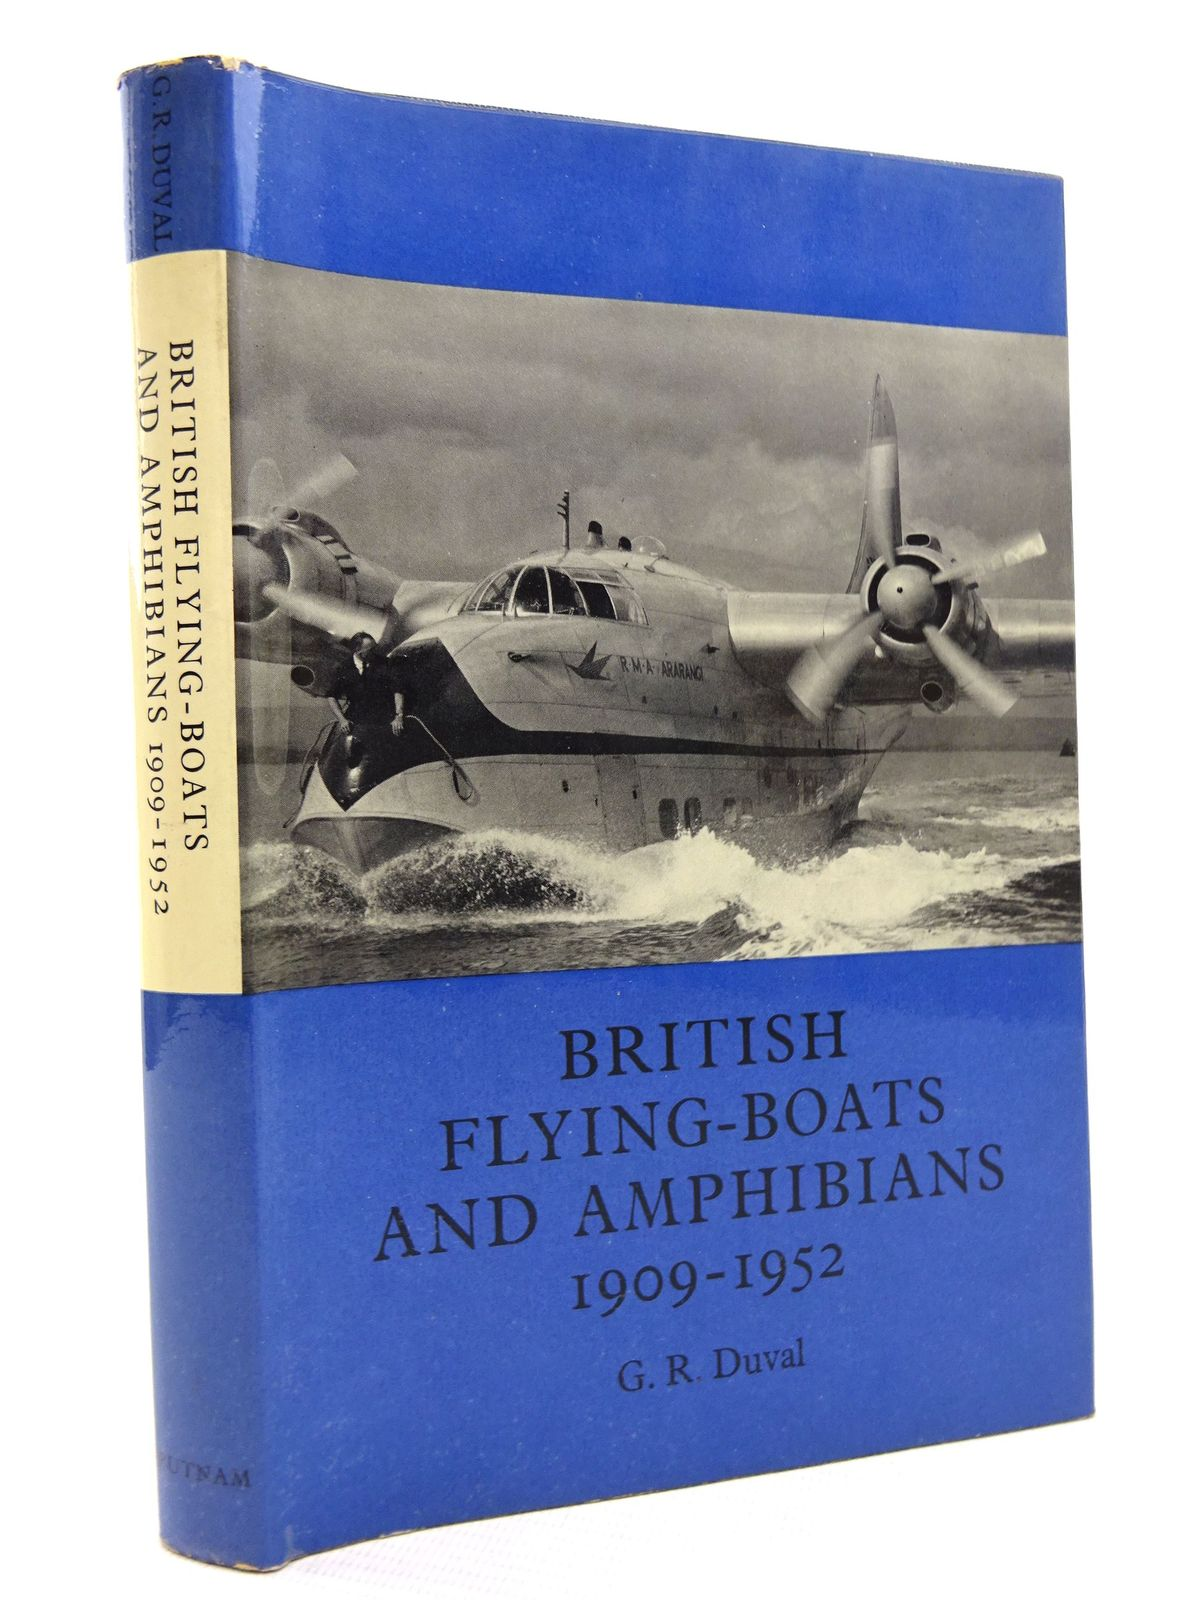 Photo of BRITISH FLYING-BOATS AND AMPHIBIANS 1909-1952 written by Duval, G.R. published by Putnam (STOCK CODE: 1816022)  for sale by Stella & Rose's Books